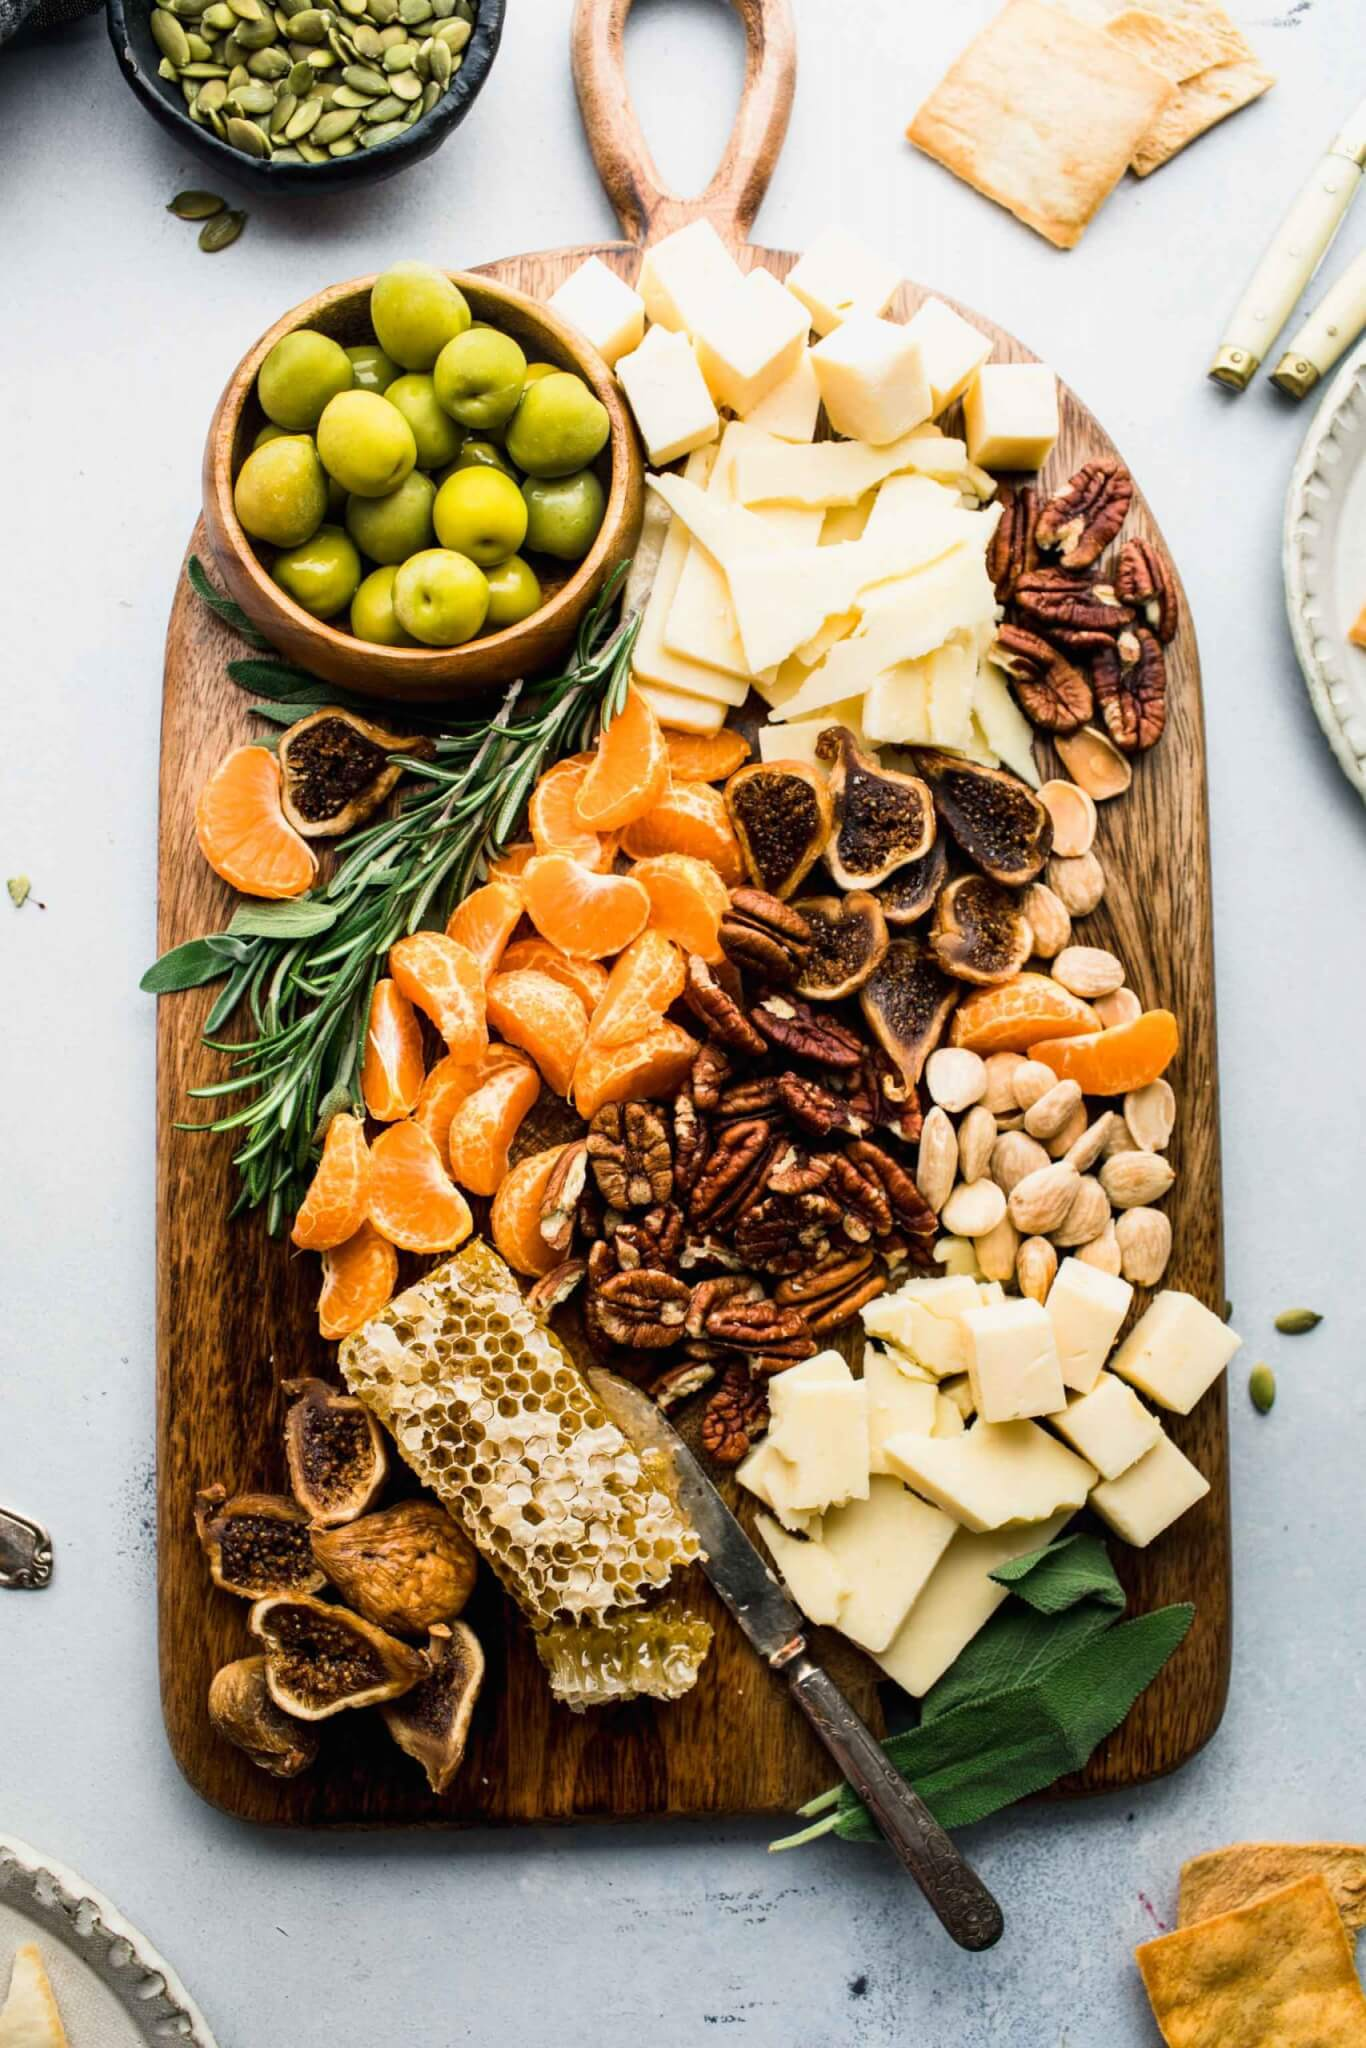 Cheeses, nuts, olives and fruits arranged on wooden serving board.